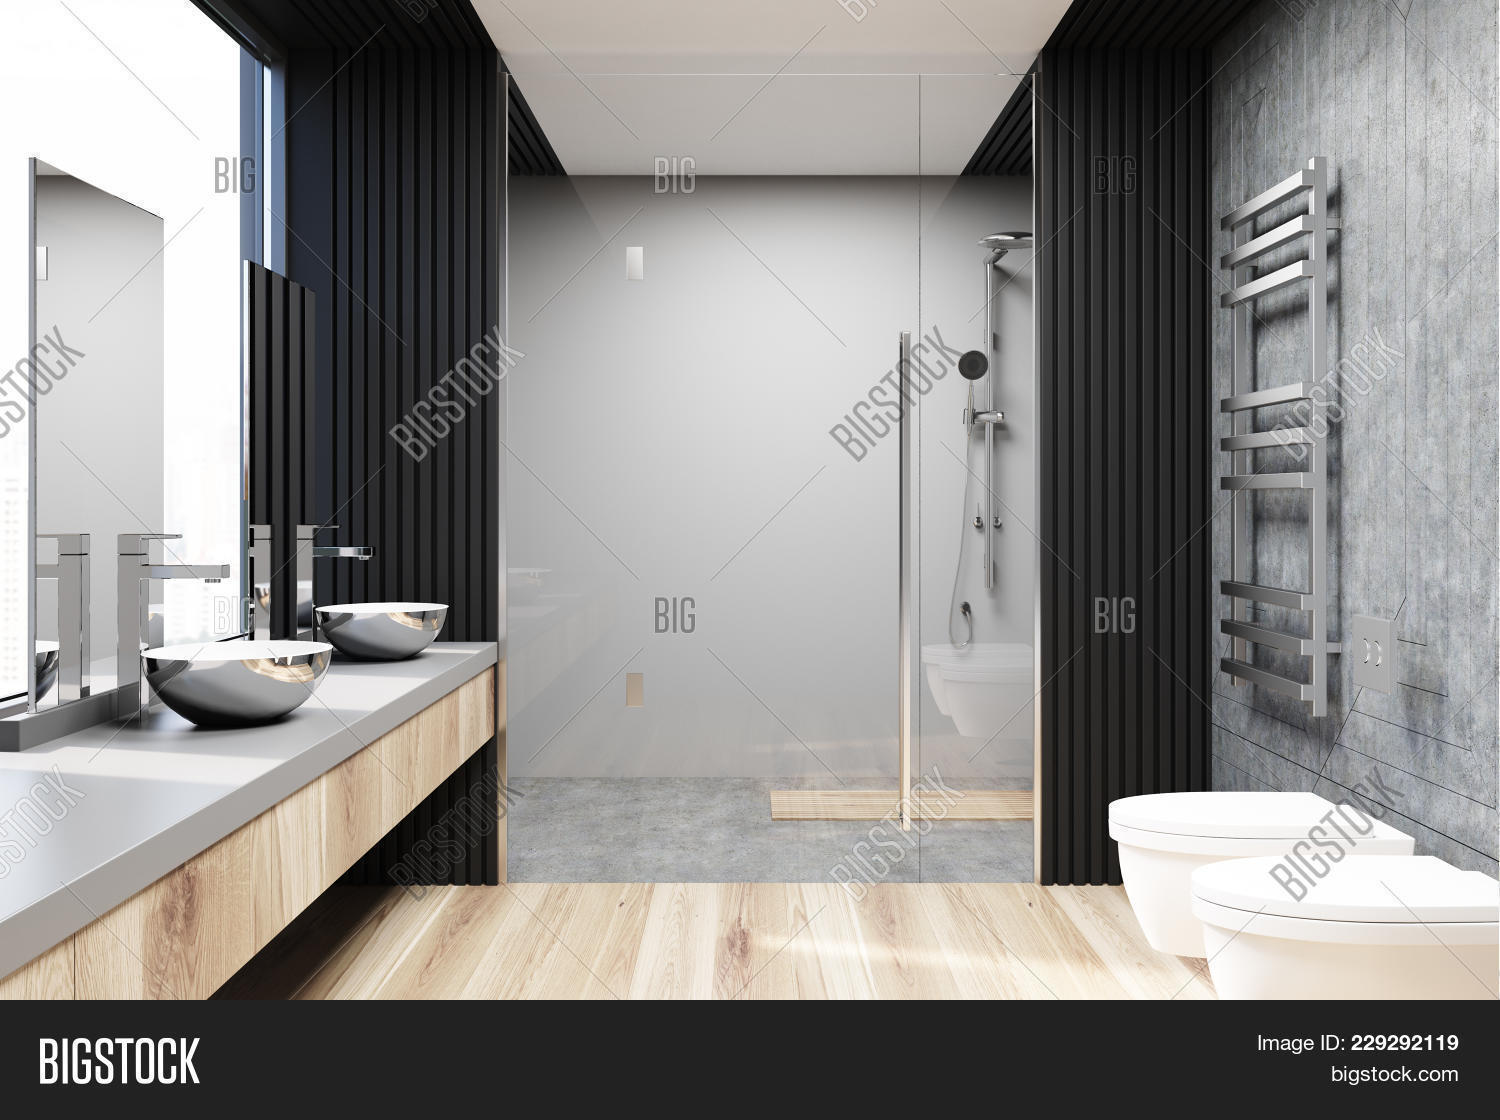 Gray And Concrete Bathroom Interior With A Concrete Floor, A Shower Stall,  A Double